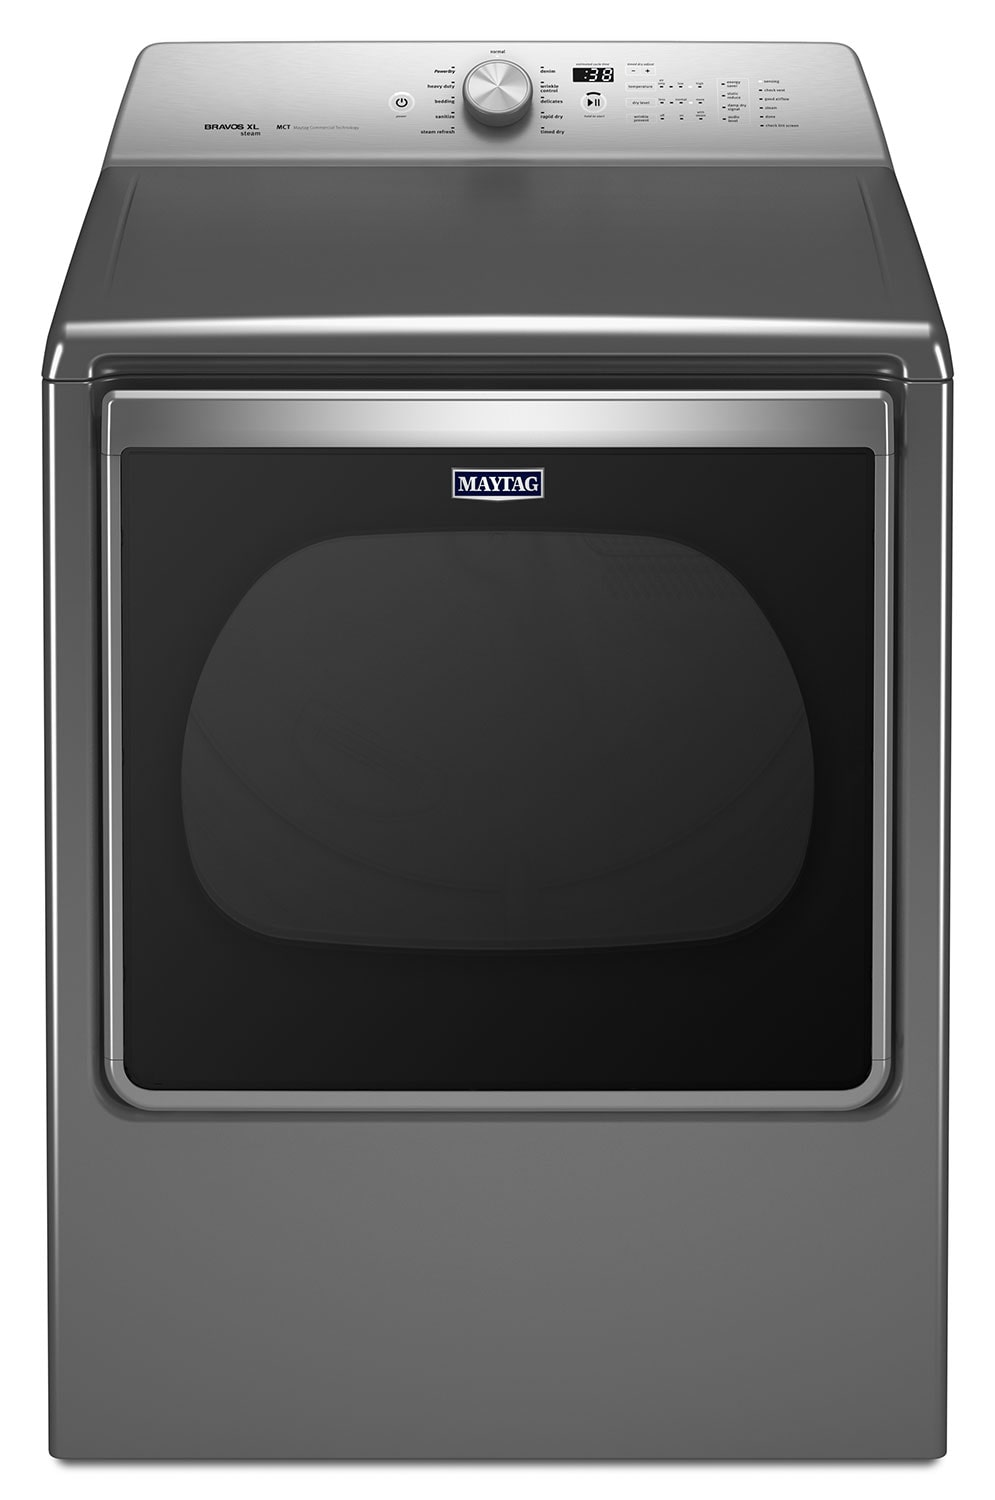 Washers and Dryers - Maytag Metallic Slate Gas Dryer (8.8 Cu. Ft.) - MGDB885DC